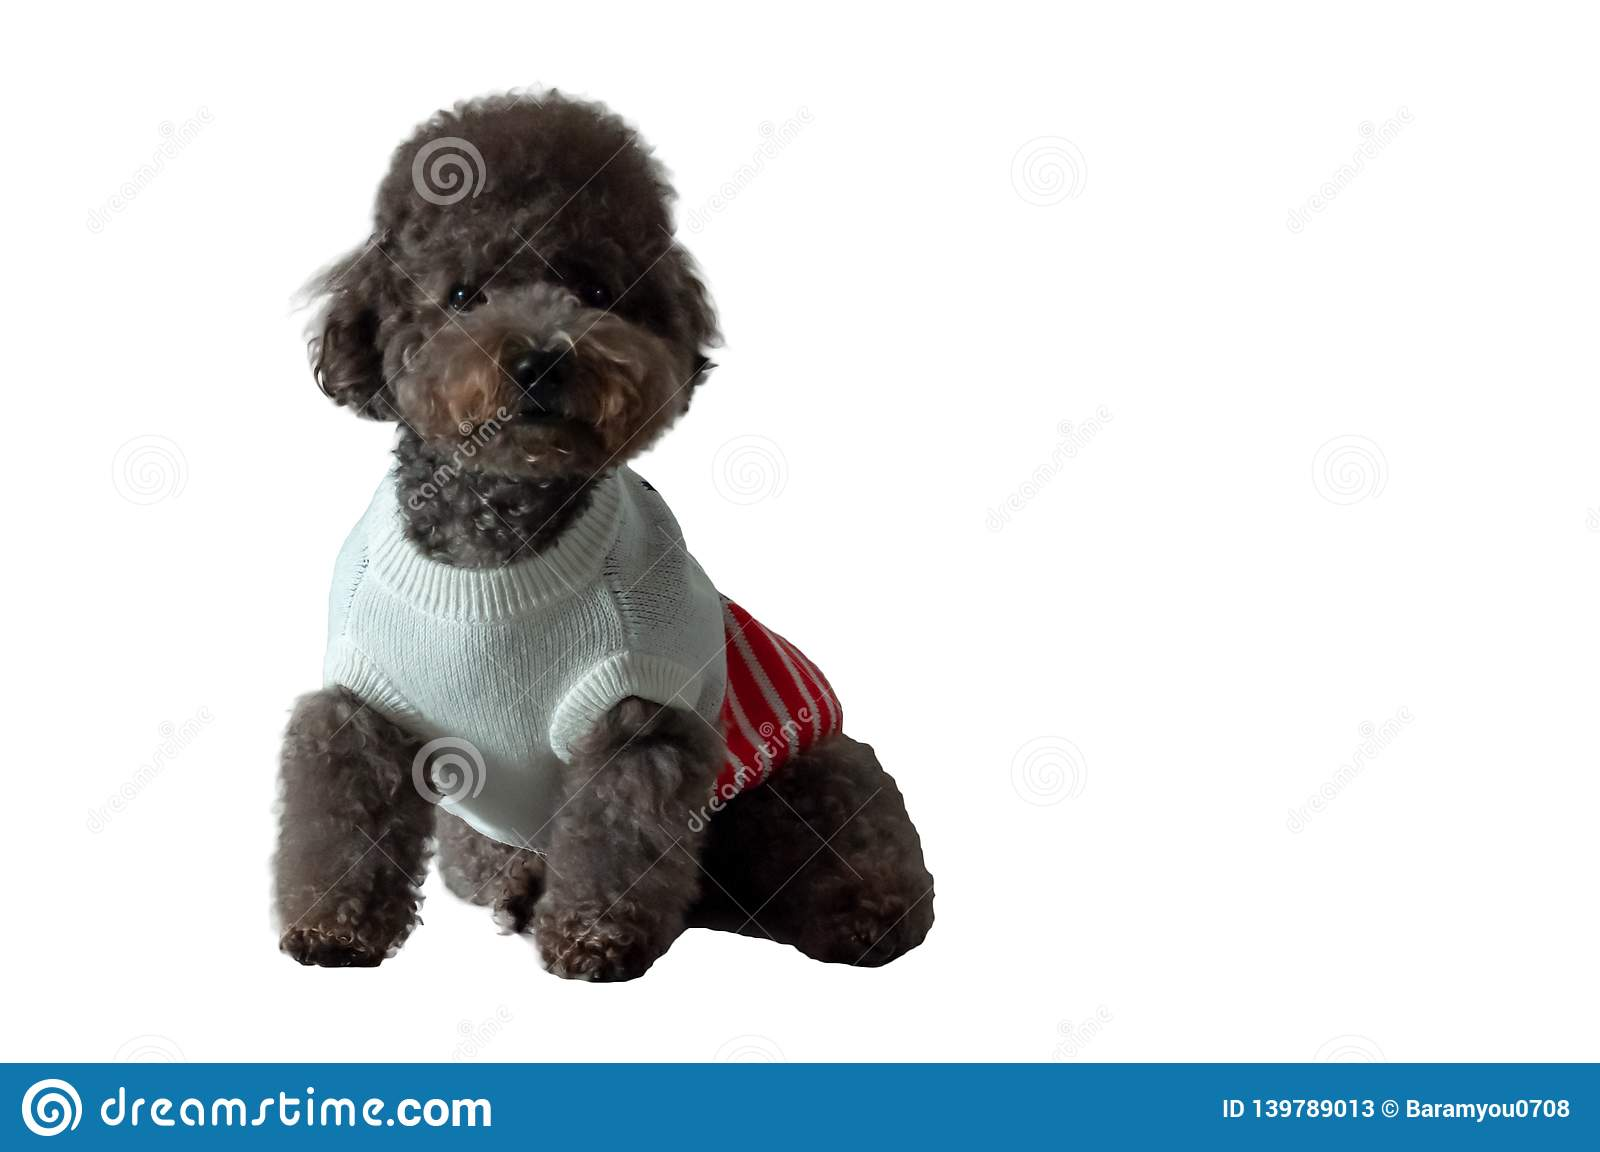 An adorable black toy Poodle dog with his dress